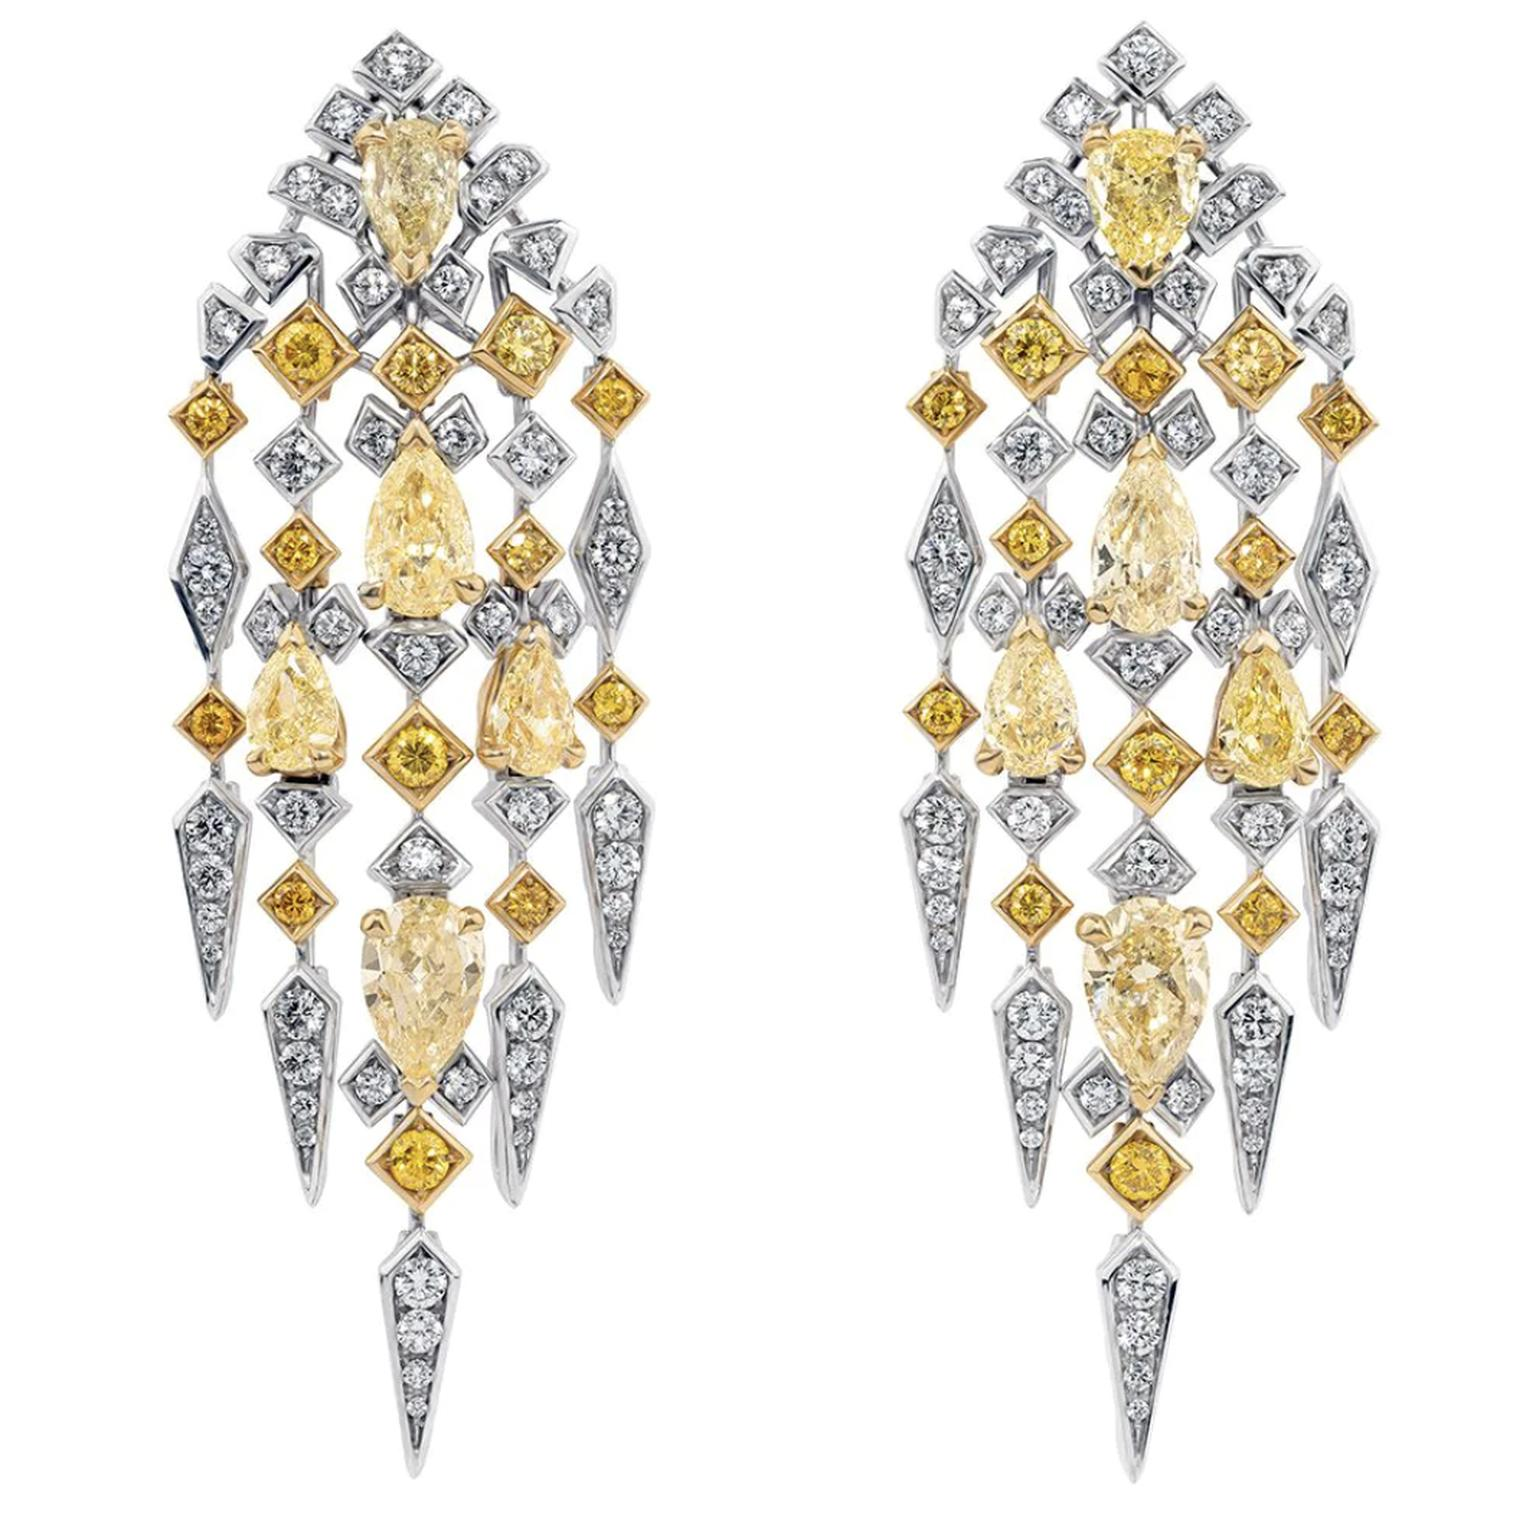 Yellow and white diamond earrings by David Morris